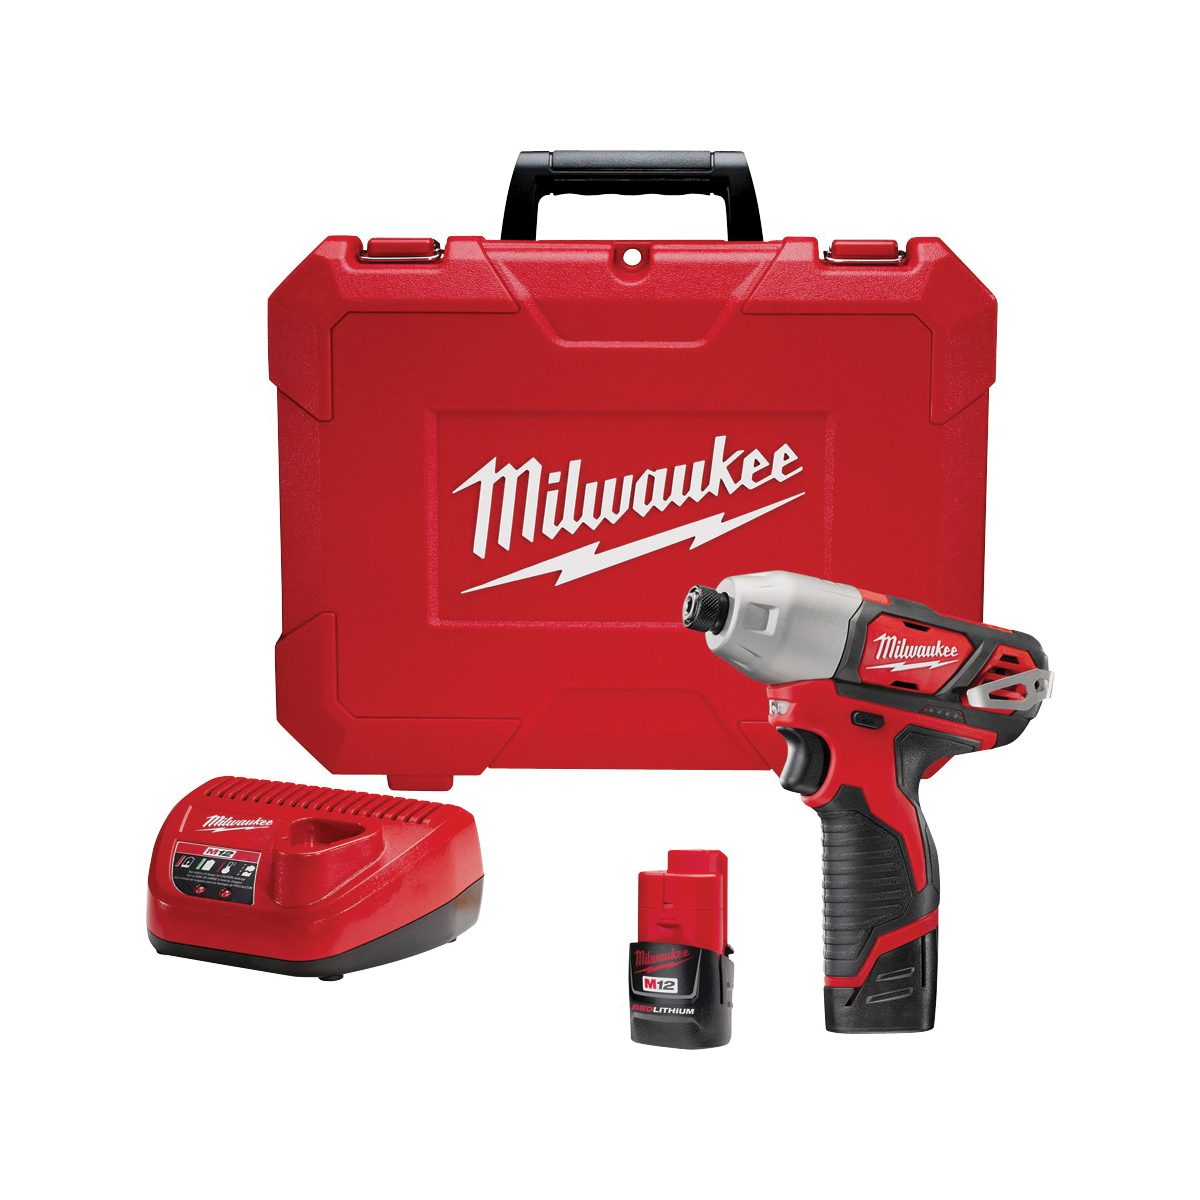 Picture of Milwaukee 2462-22 Impact Driver Kit, Kit, 12 V Battery, 1.5 Ah, 1/4 in Drive, Hex Drive, 3300 ipm IPM